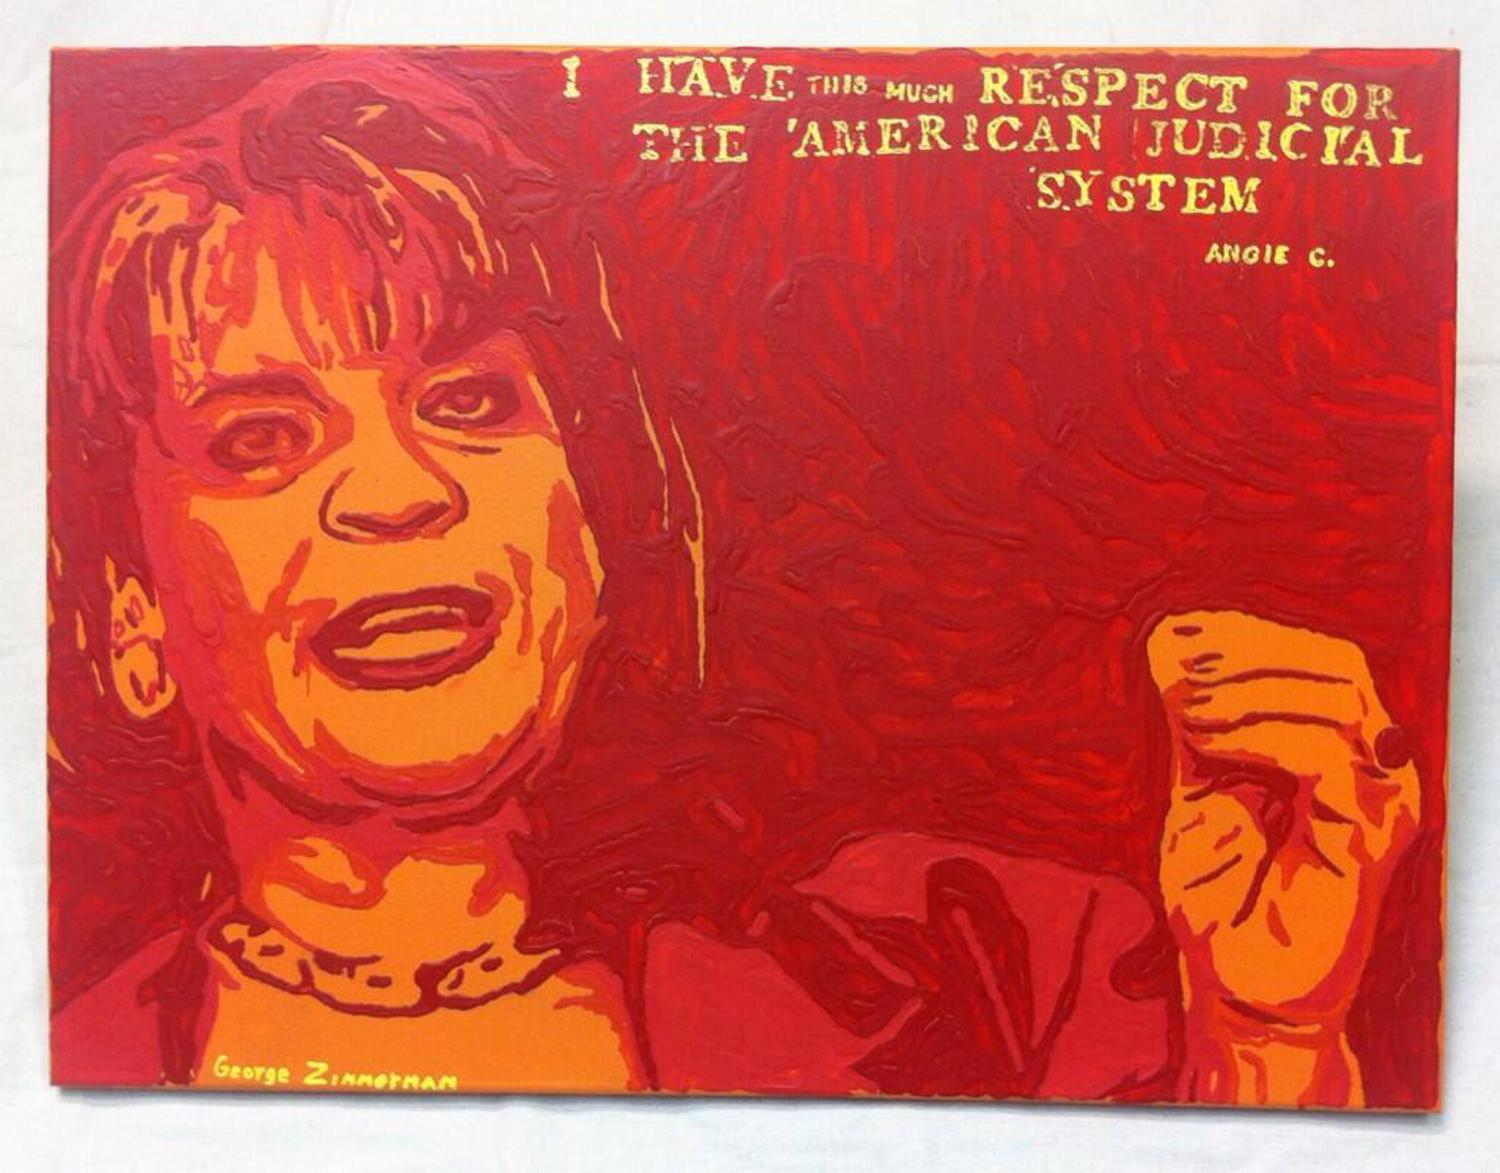 """FILE - This undated file photo shows a painting by George Zimmerman, portraying Florida State Attorney Angela Corey, the special prosecutor who charged him with second-degree murder in the 2012 shooting death of 17-year-old Trayvon Martin. Zimmerman's brother, Robert Zimmerman Jr., posted a photo of the painting, titled """"Angie"""", on Twitter on Wednesday, Jan. 22, 2014. He said details about its sale would follow Thursday. The Associated Press has demanded that they halt the sale of the painting because the news agency says it directly copies an AP photo taken by freelance photographer Rick Wilson on April 11, 2012. (AP Photo)"""